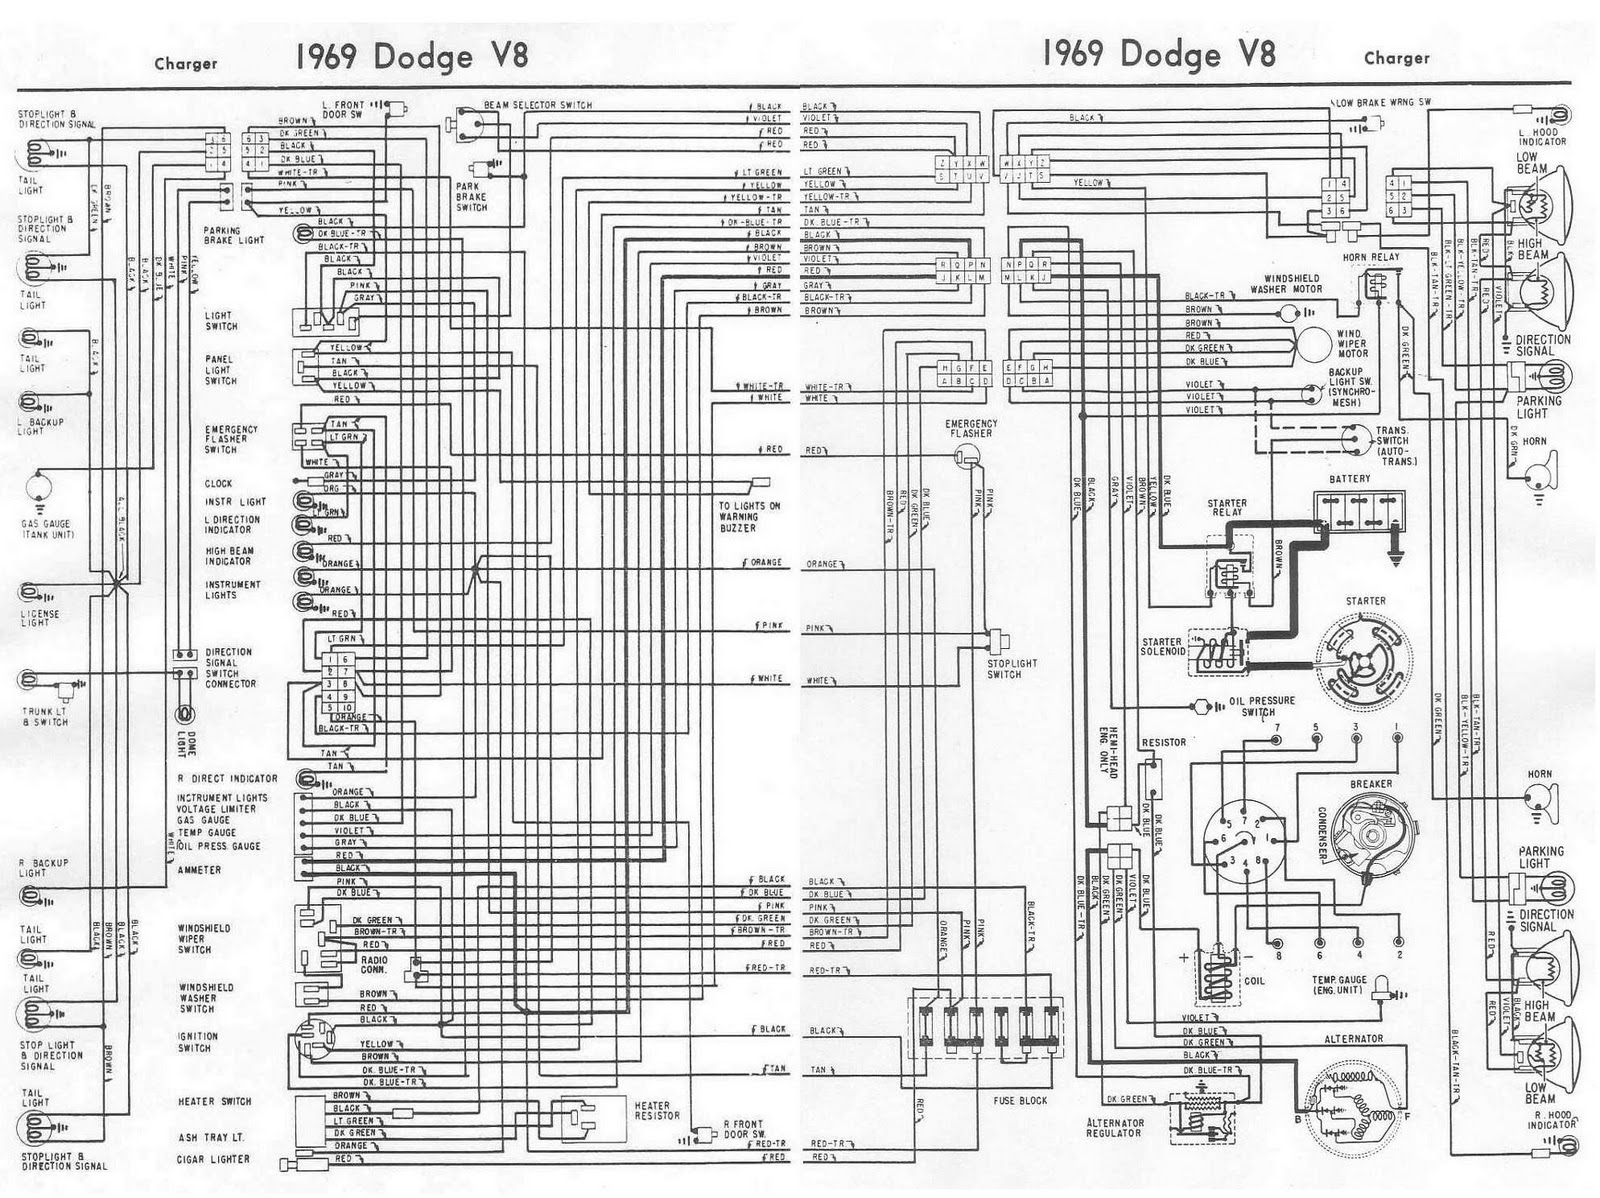 1969+Dodge+Charger+V8+Complete+Wiring+Diagram 2012 mustang wiring diagram 2010 flex wiring diagram \u2022 wiring  at webbmarketing.co